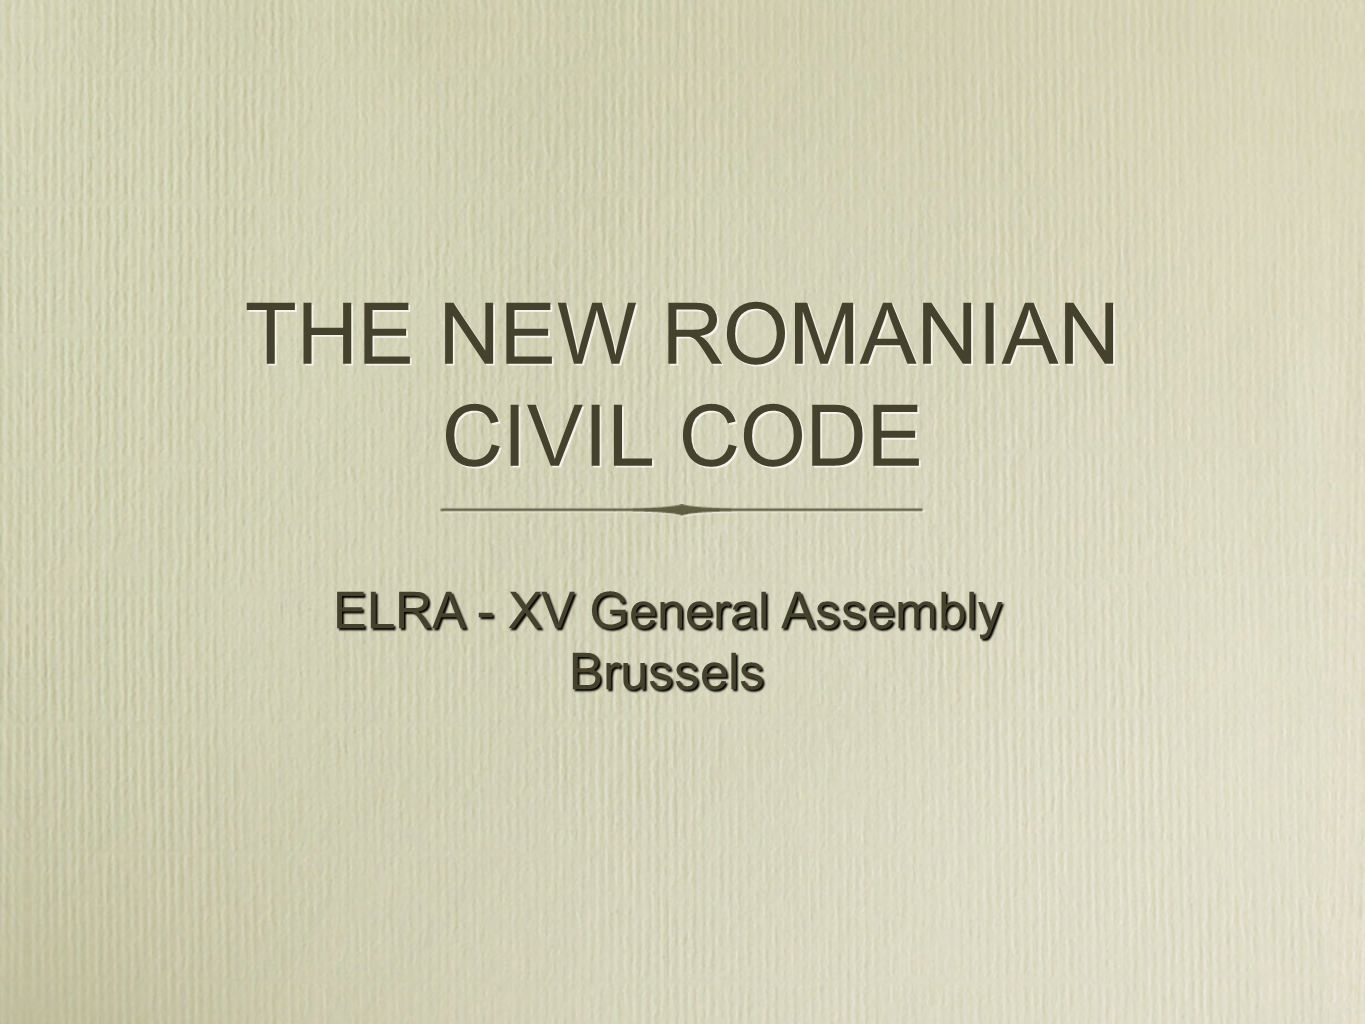 THE NEW ROMANIAN CIVIL CODE ELRA - XV General Assembly Brussels